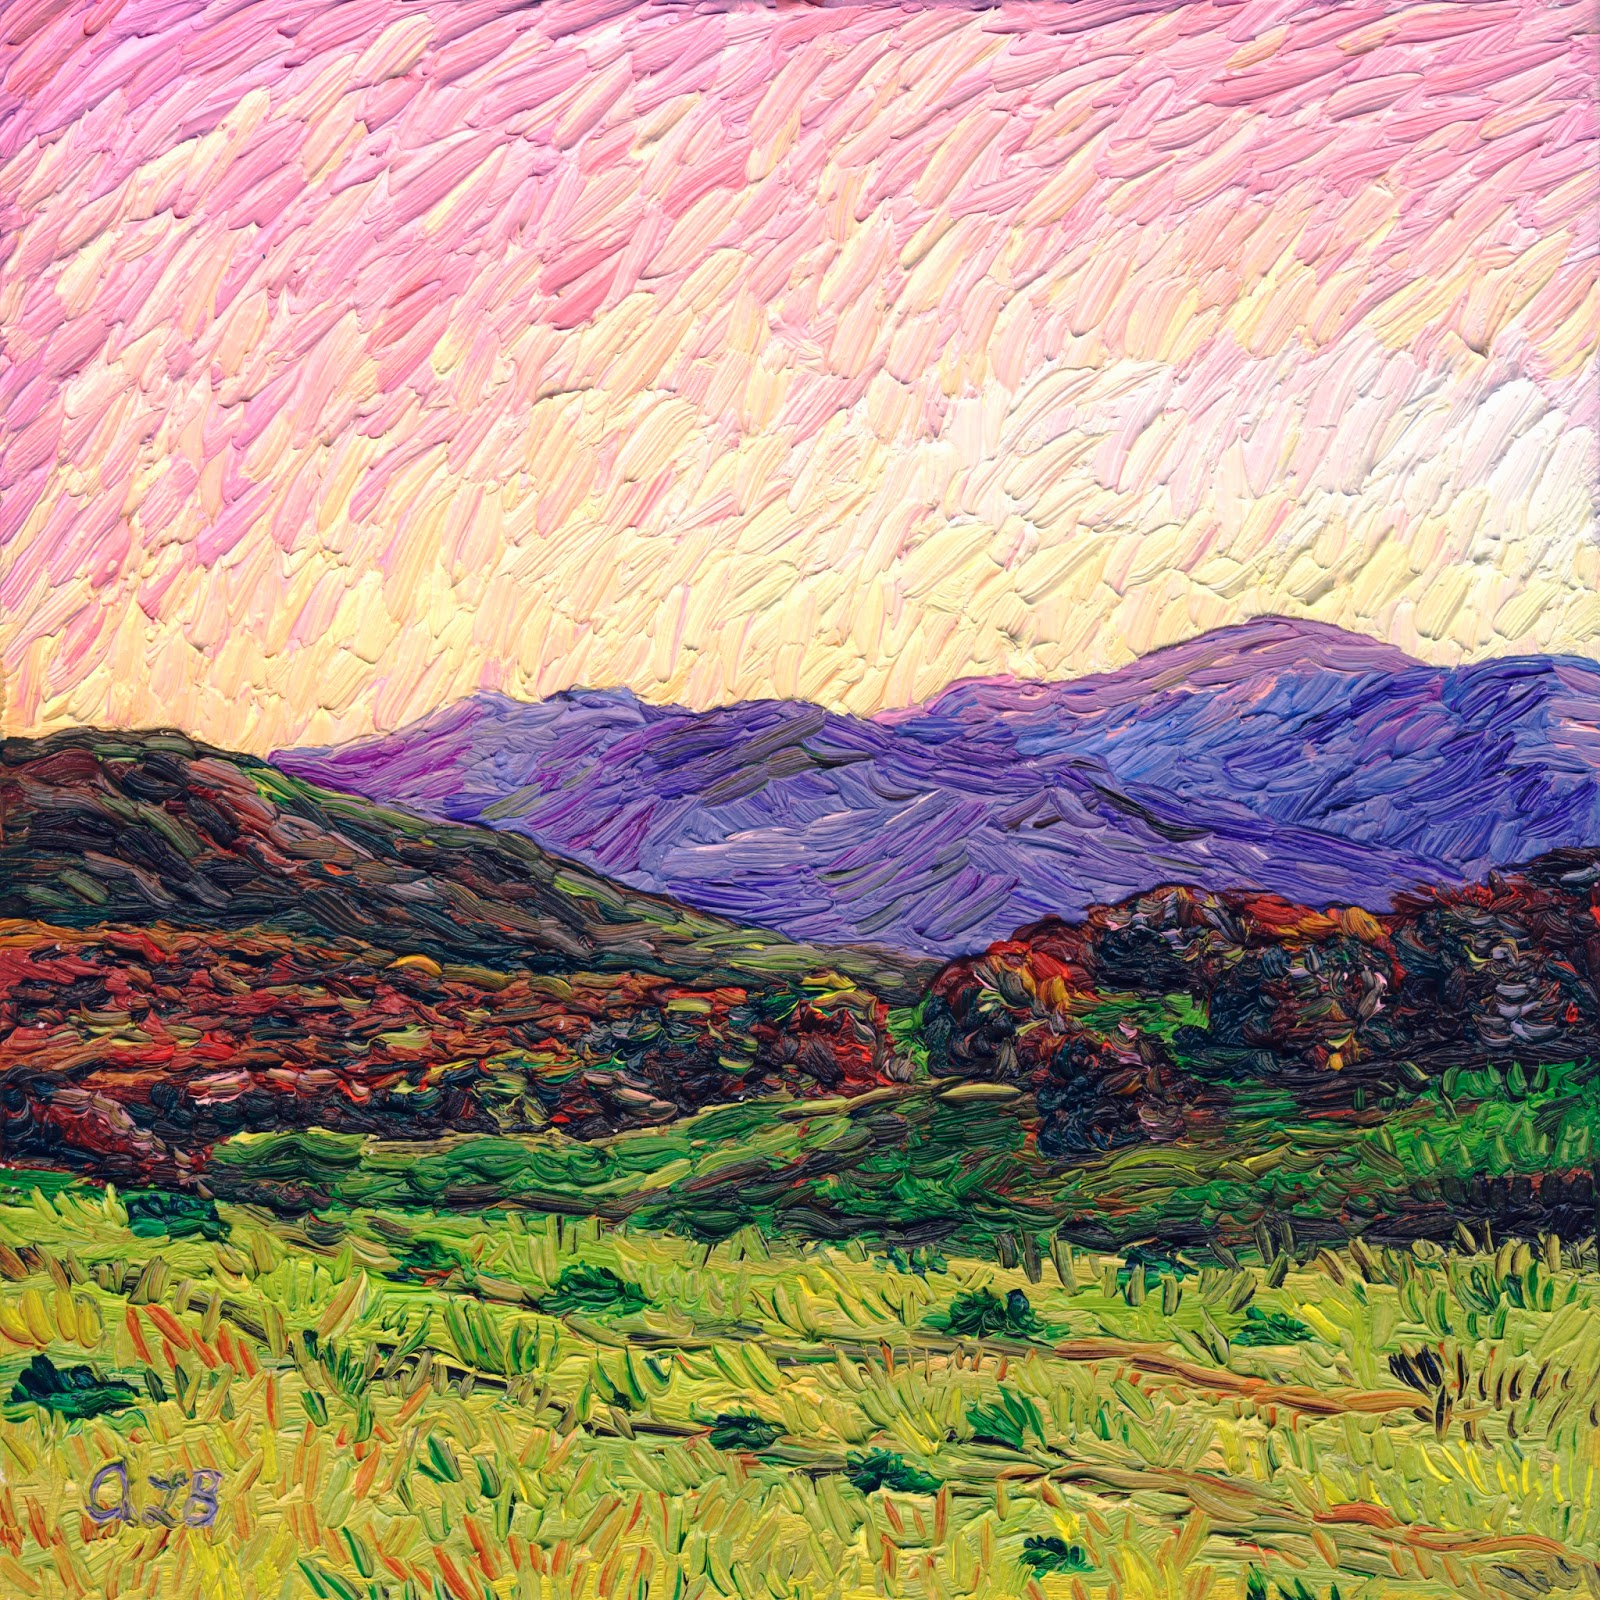 https://www.etsy.com/listing/210589557/giclee-print-mountain-sunset-8-x-8-in?ref=shop_home_active_4